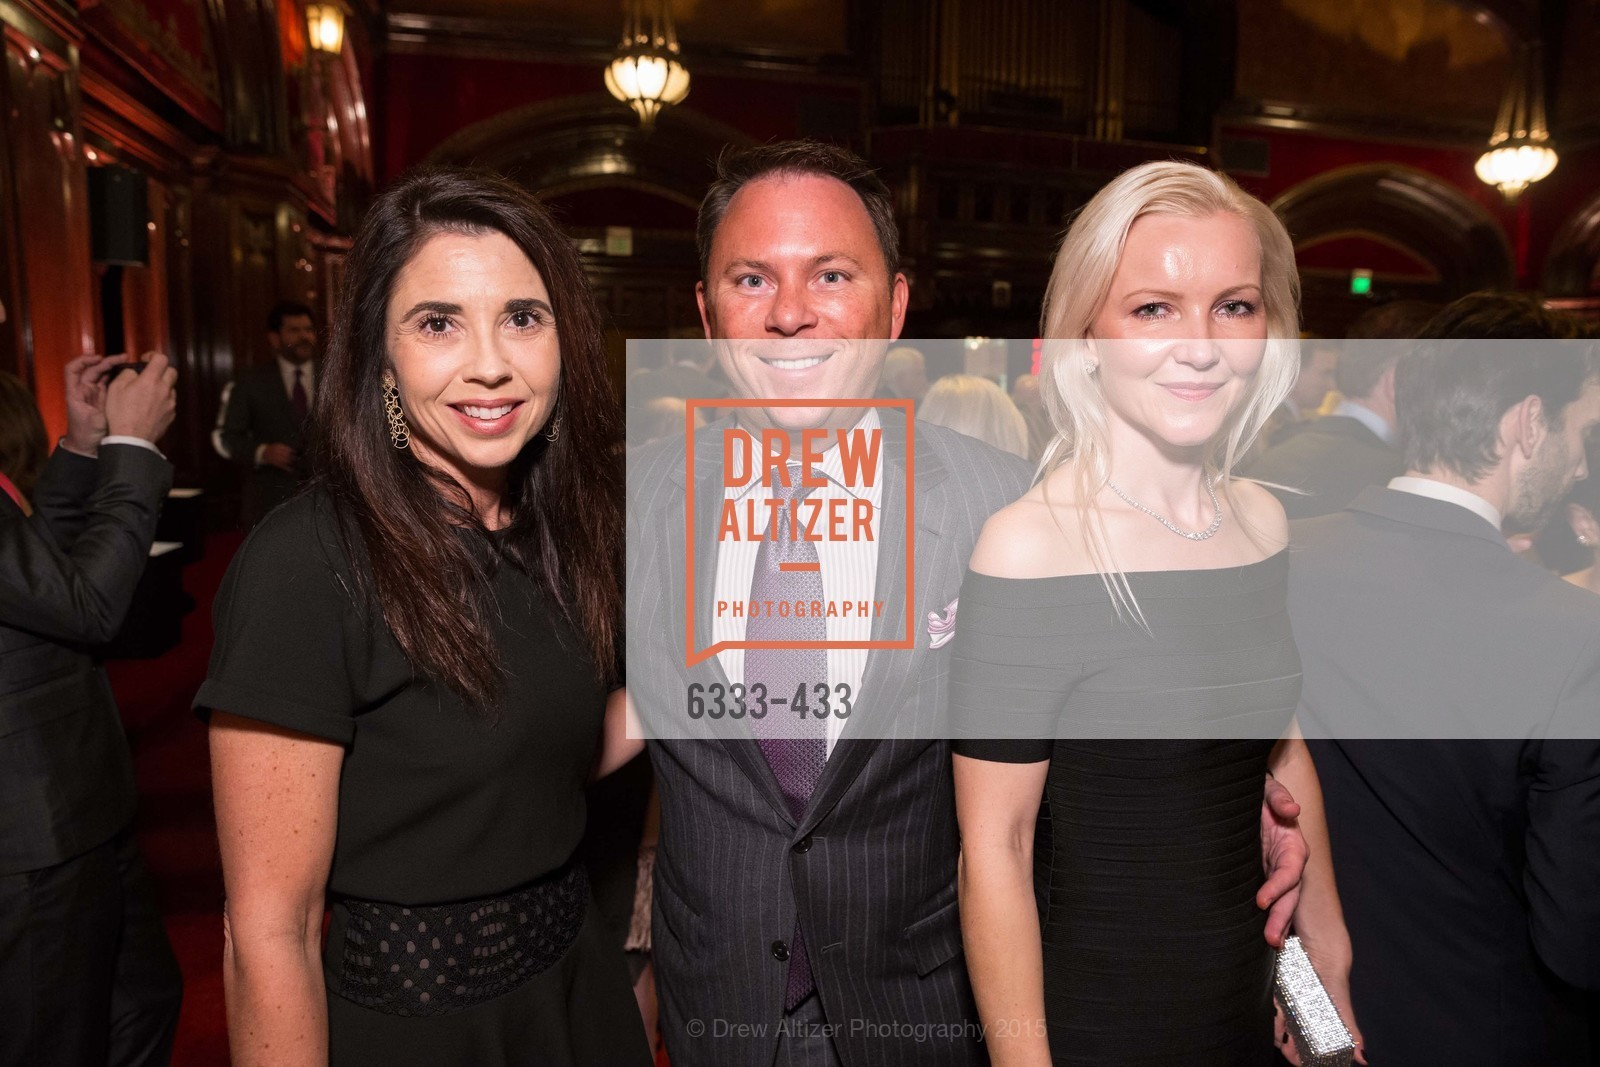 Candace Cavanaugh, Gary McGuire, Nathalie Delrue-McGuire, SFMOMA Contemporary Vision Award, Regency Ballroom. 1300 Van Ness, November 3rd, 2015,Drew Altizer, Drew Altizer Photography, full-service agency, private events, San Francisco photographer, photographer california